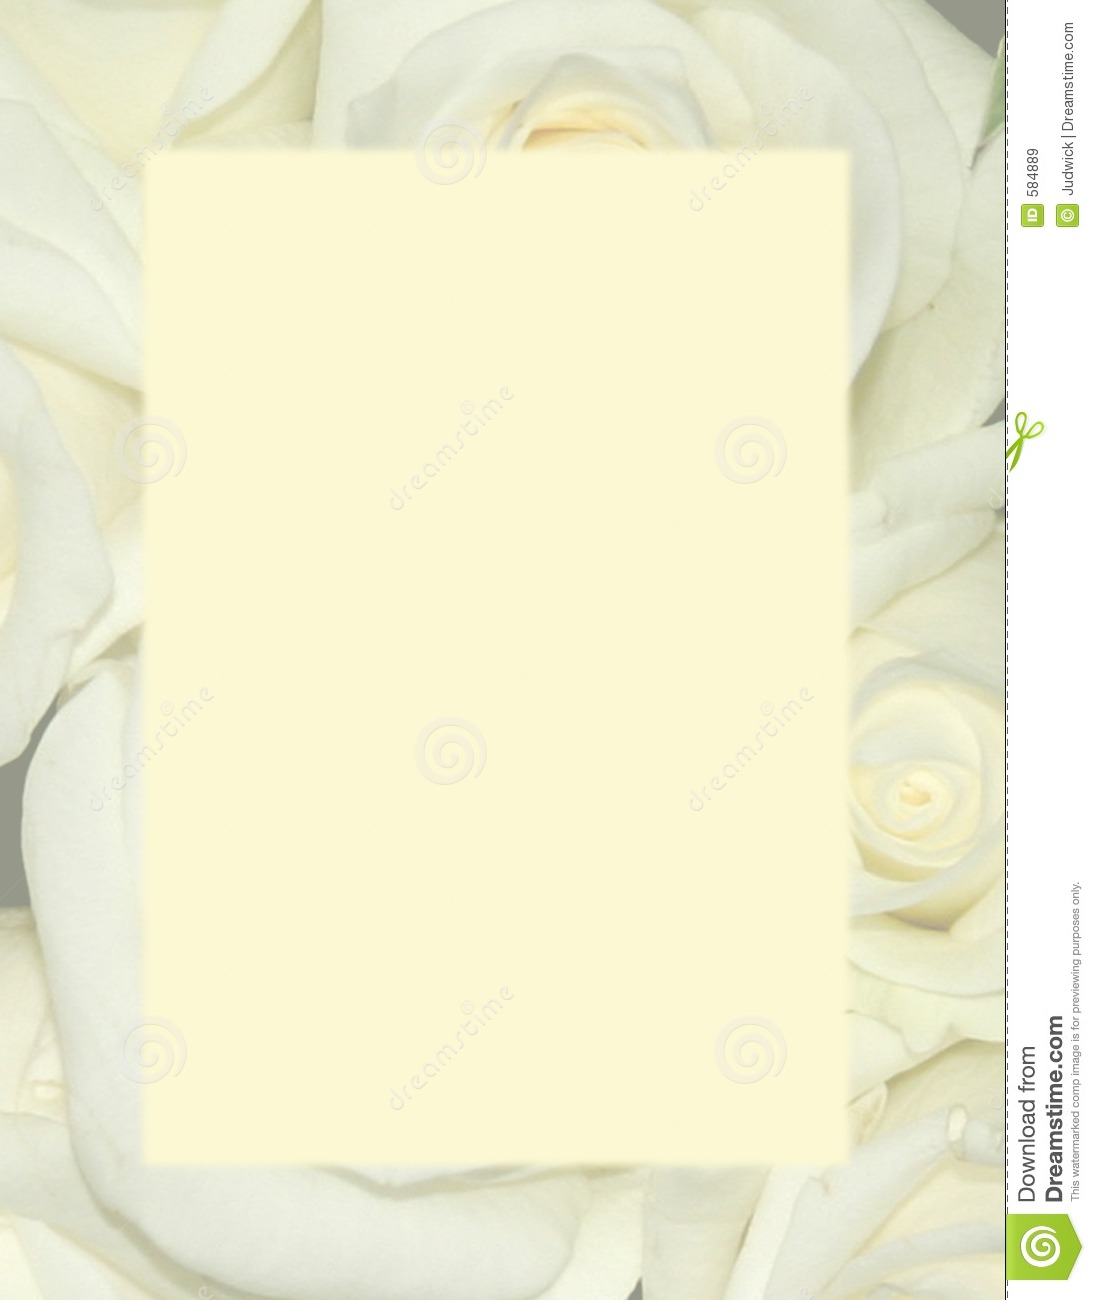 Mail Background Stationery http://www.dreamstime.com/royalty-free ...